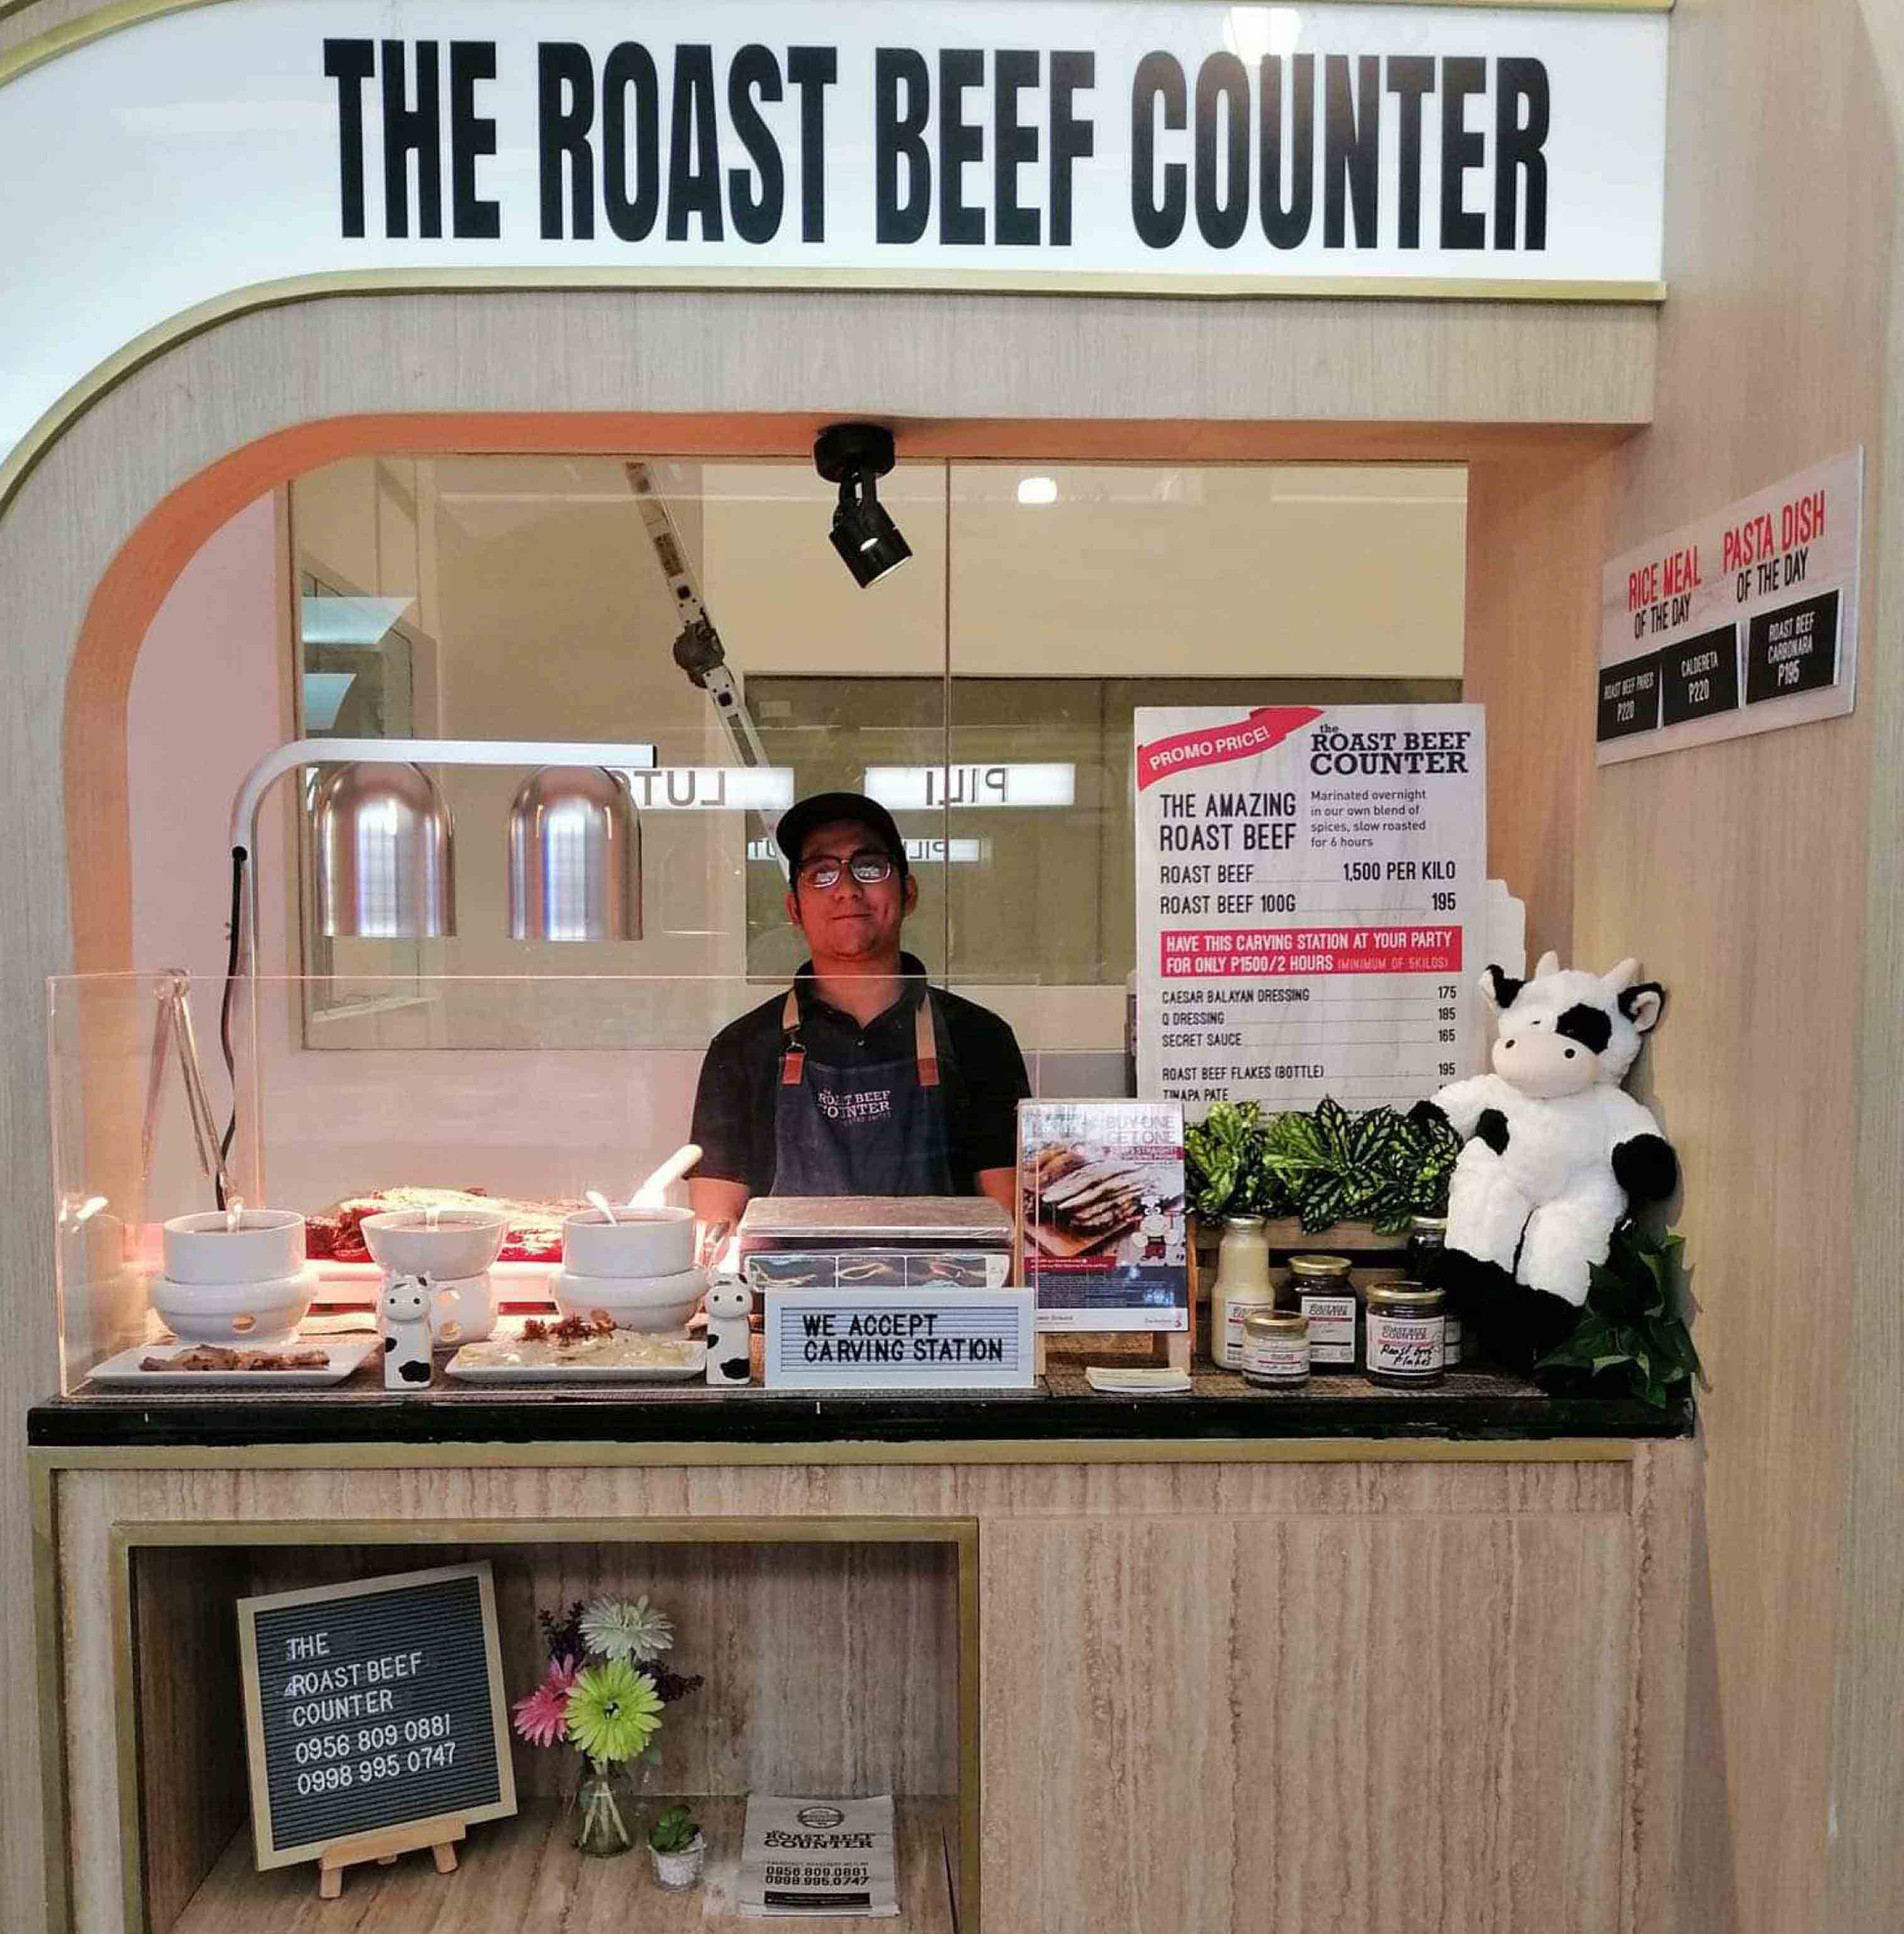 The Roast Beef Counter